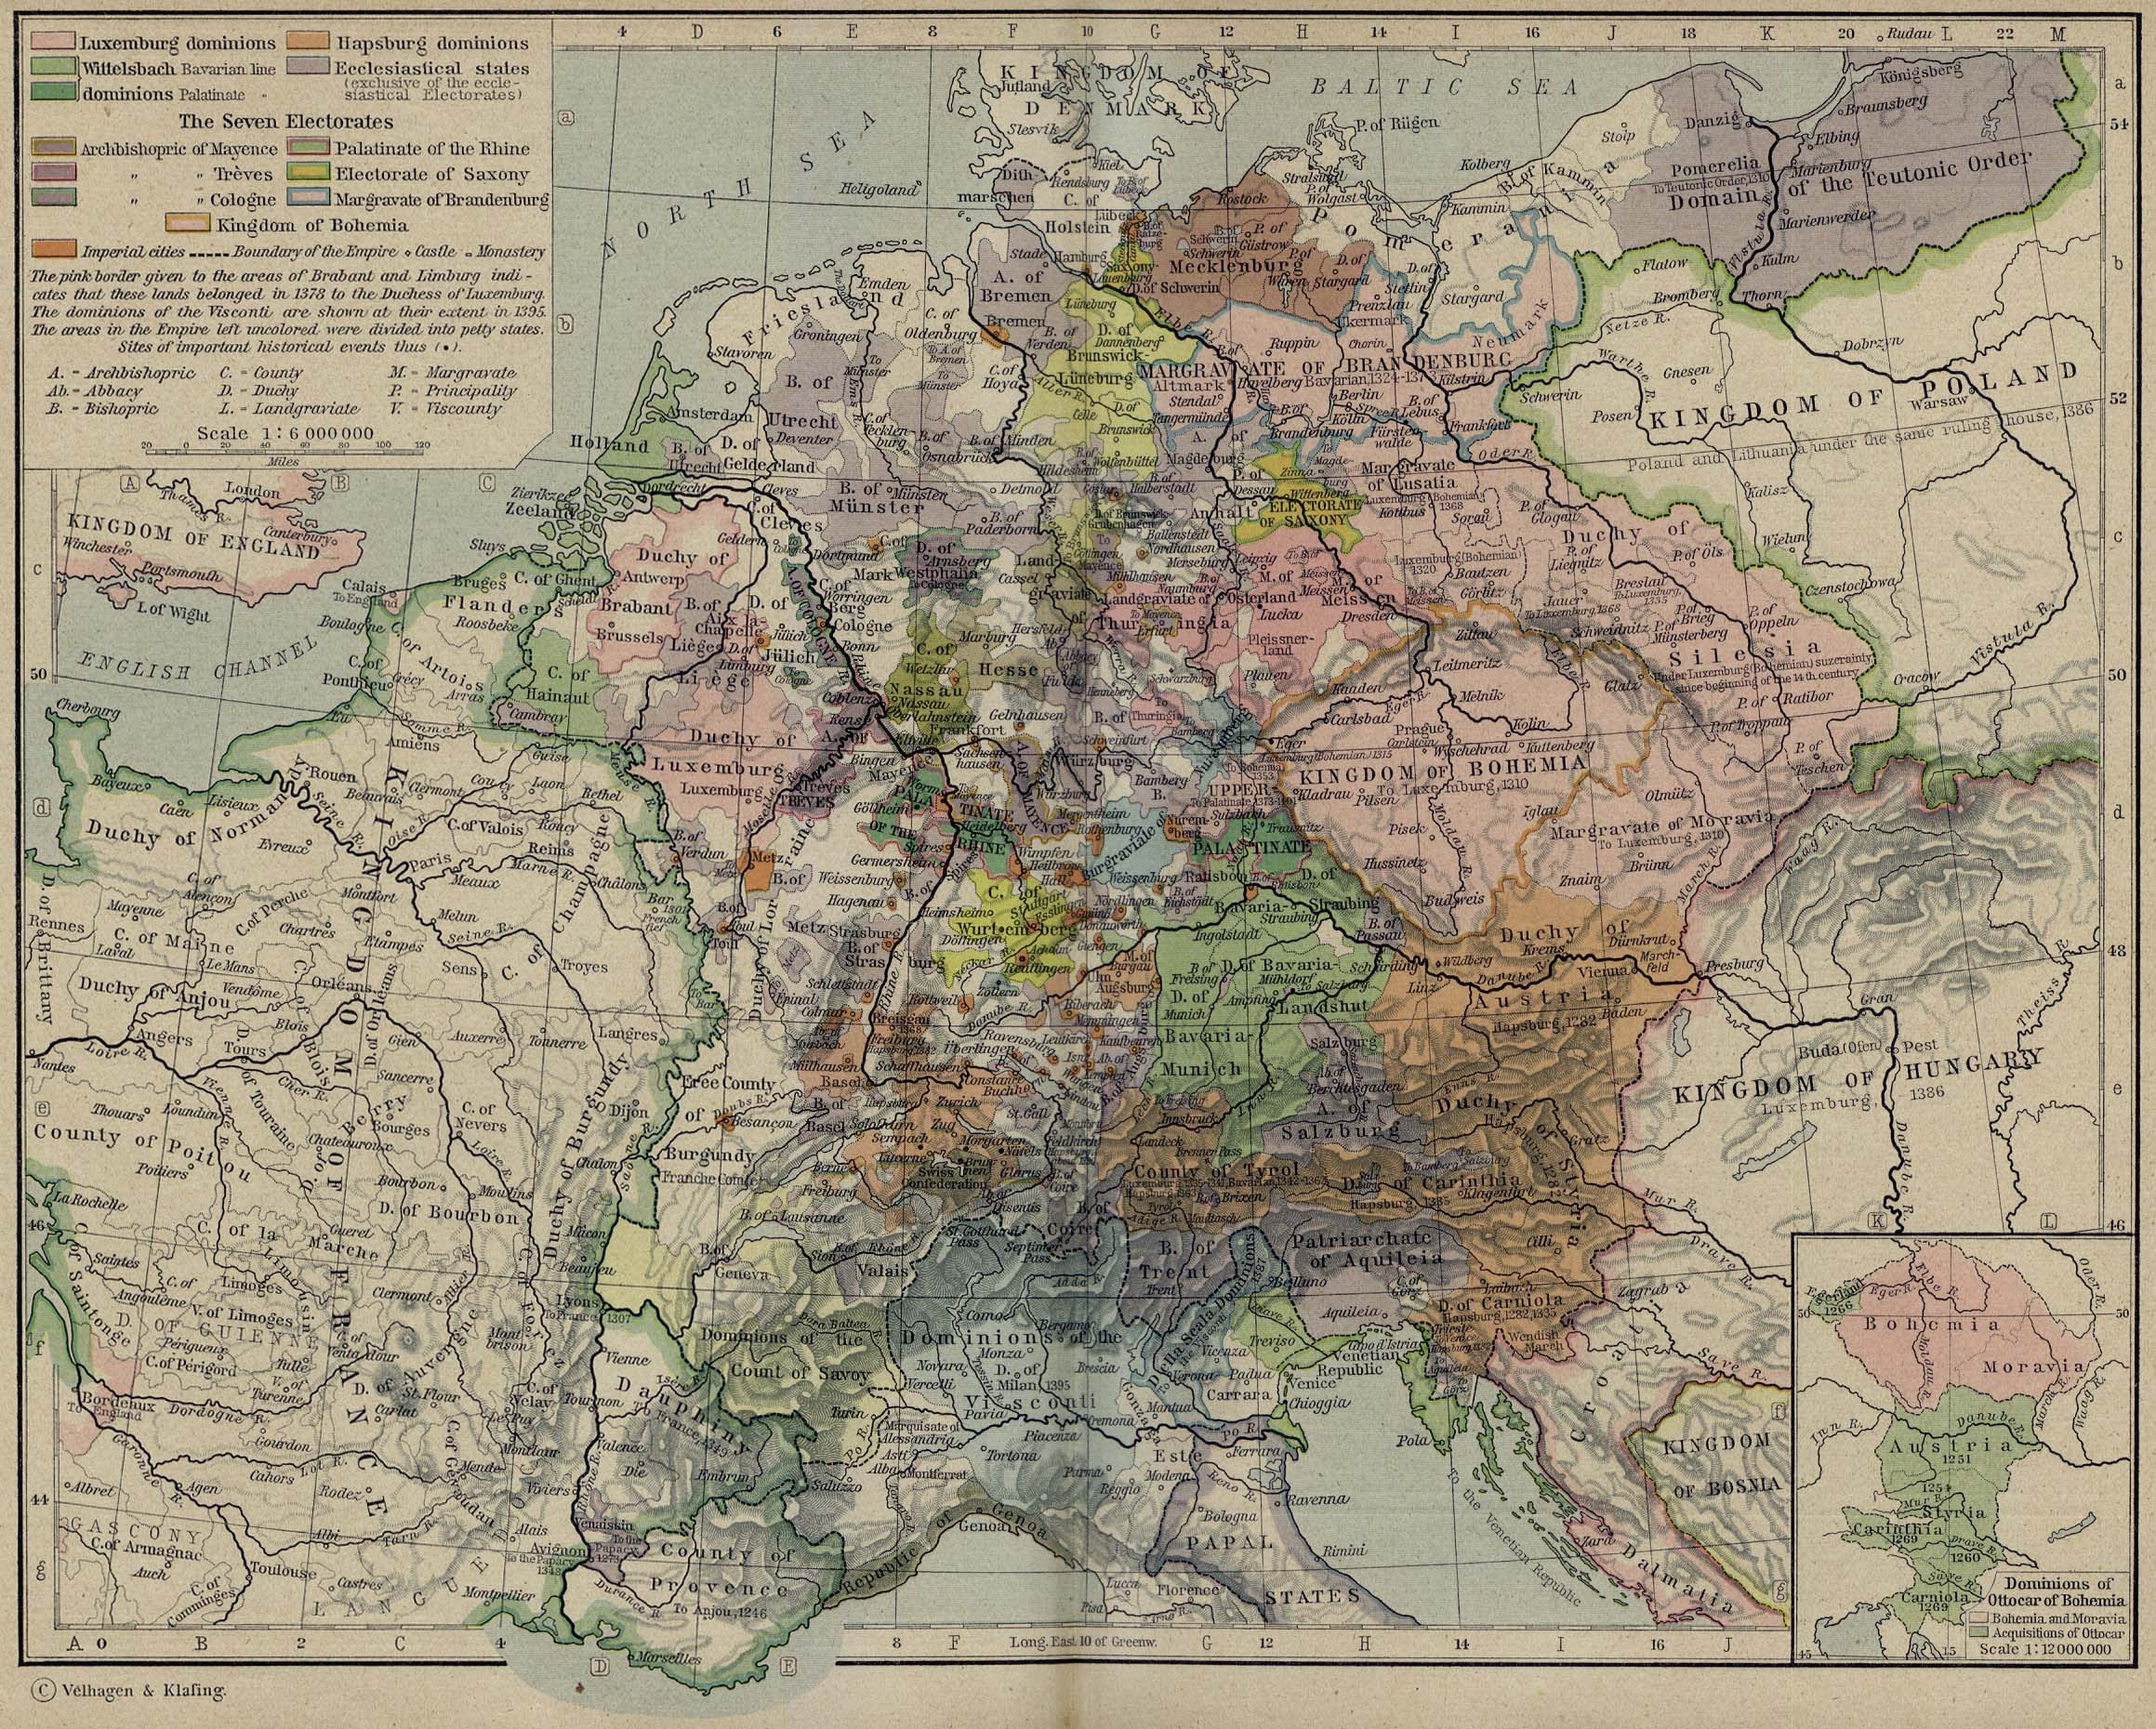 Map of Central Europe in 1378